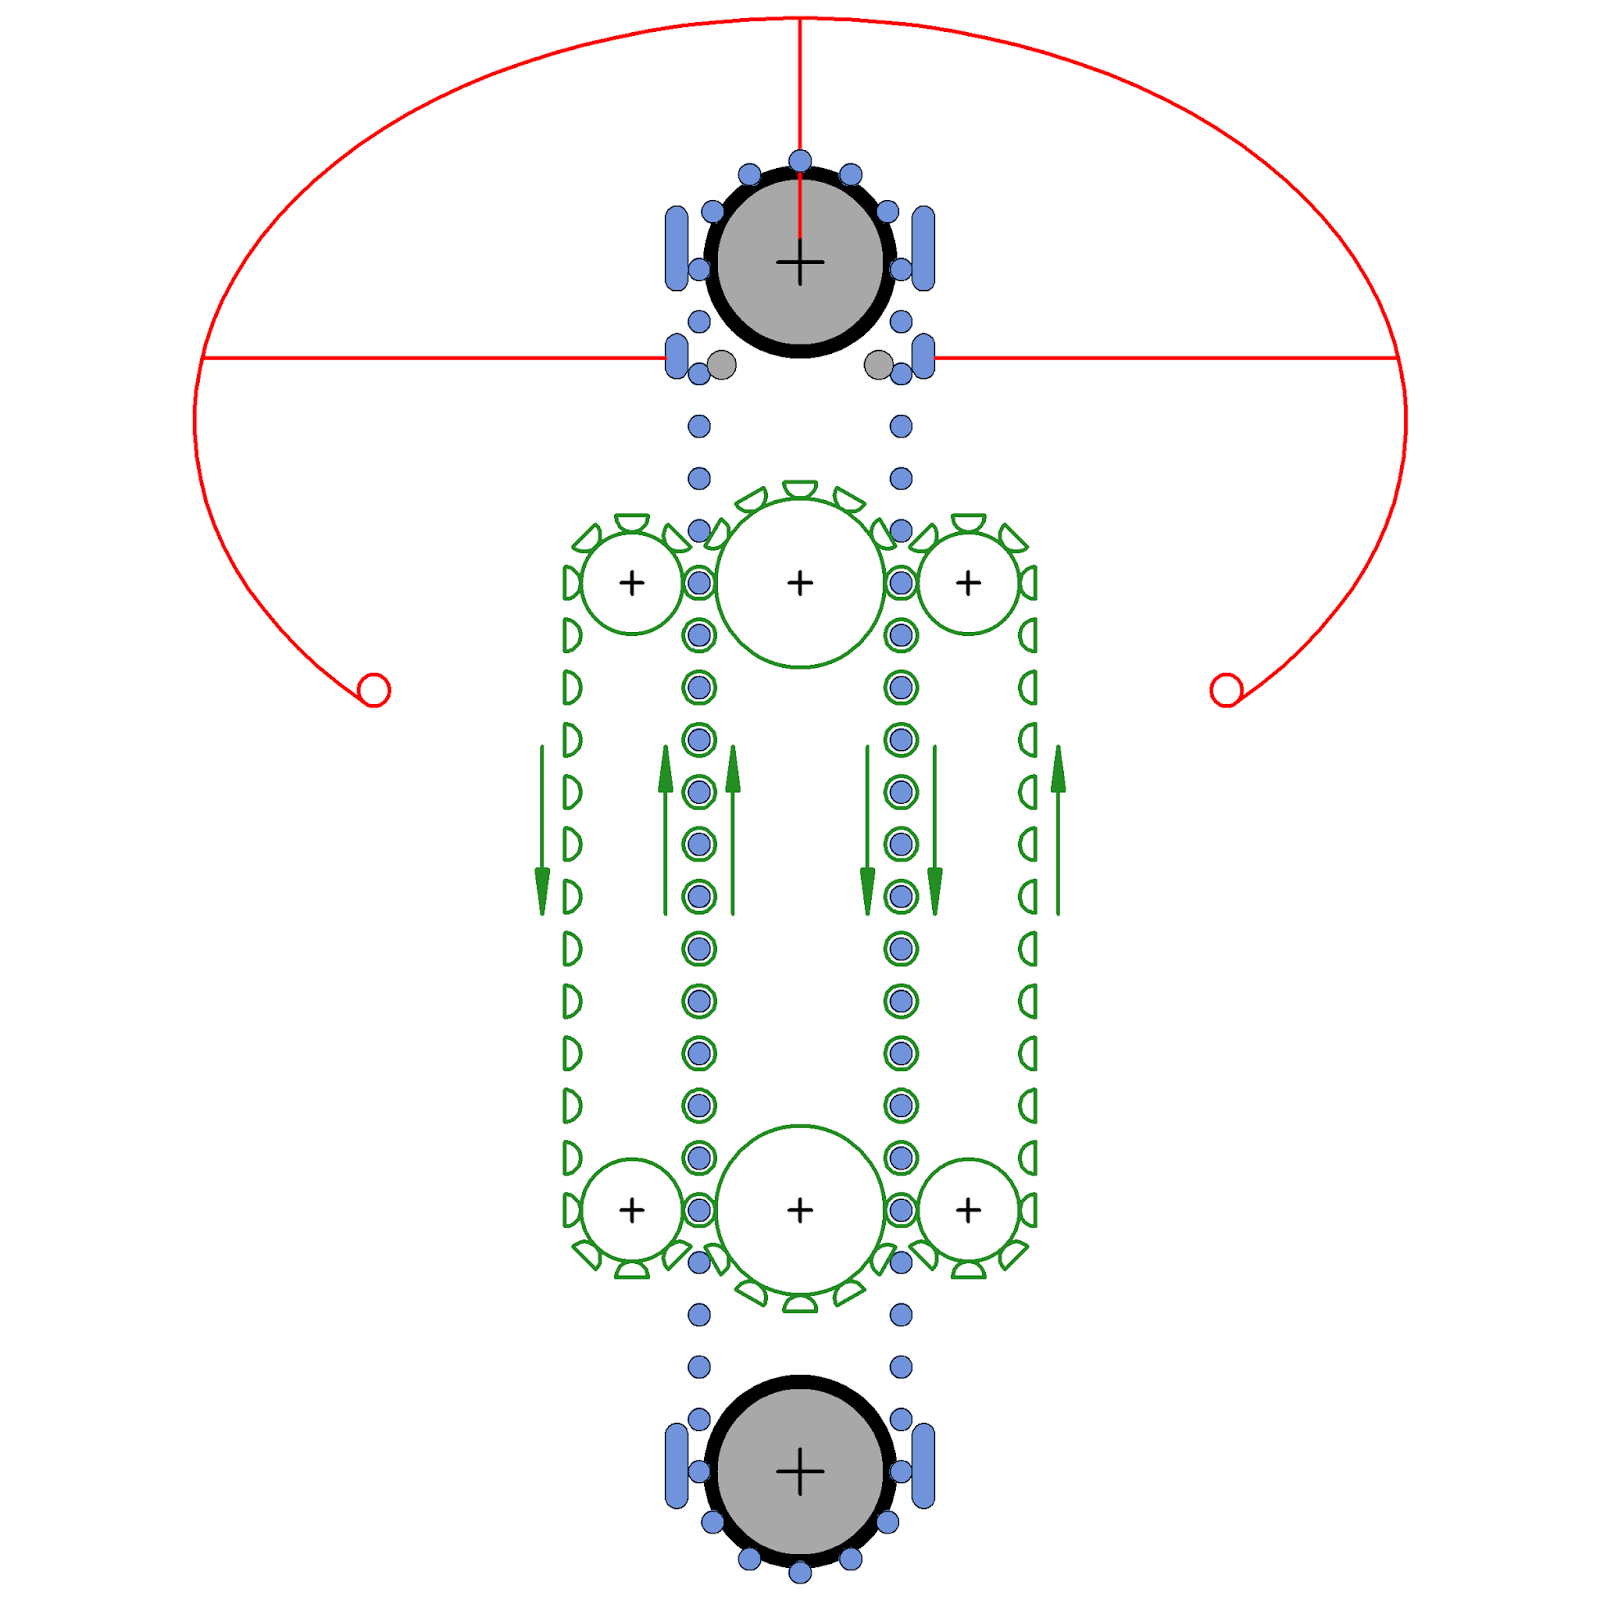 medium resolution of cross sectional view of modified pelletron design with chains carrying hemispherical hollow metal shields each shield has insulating links to its